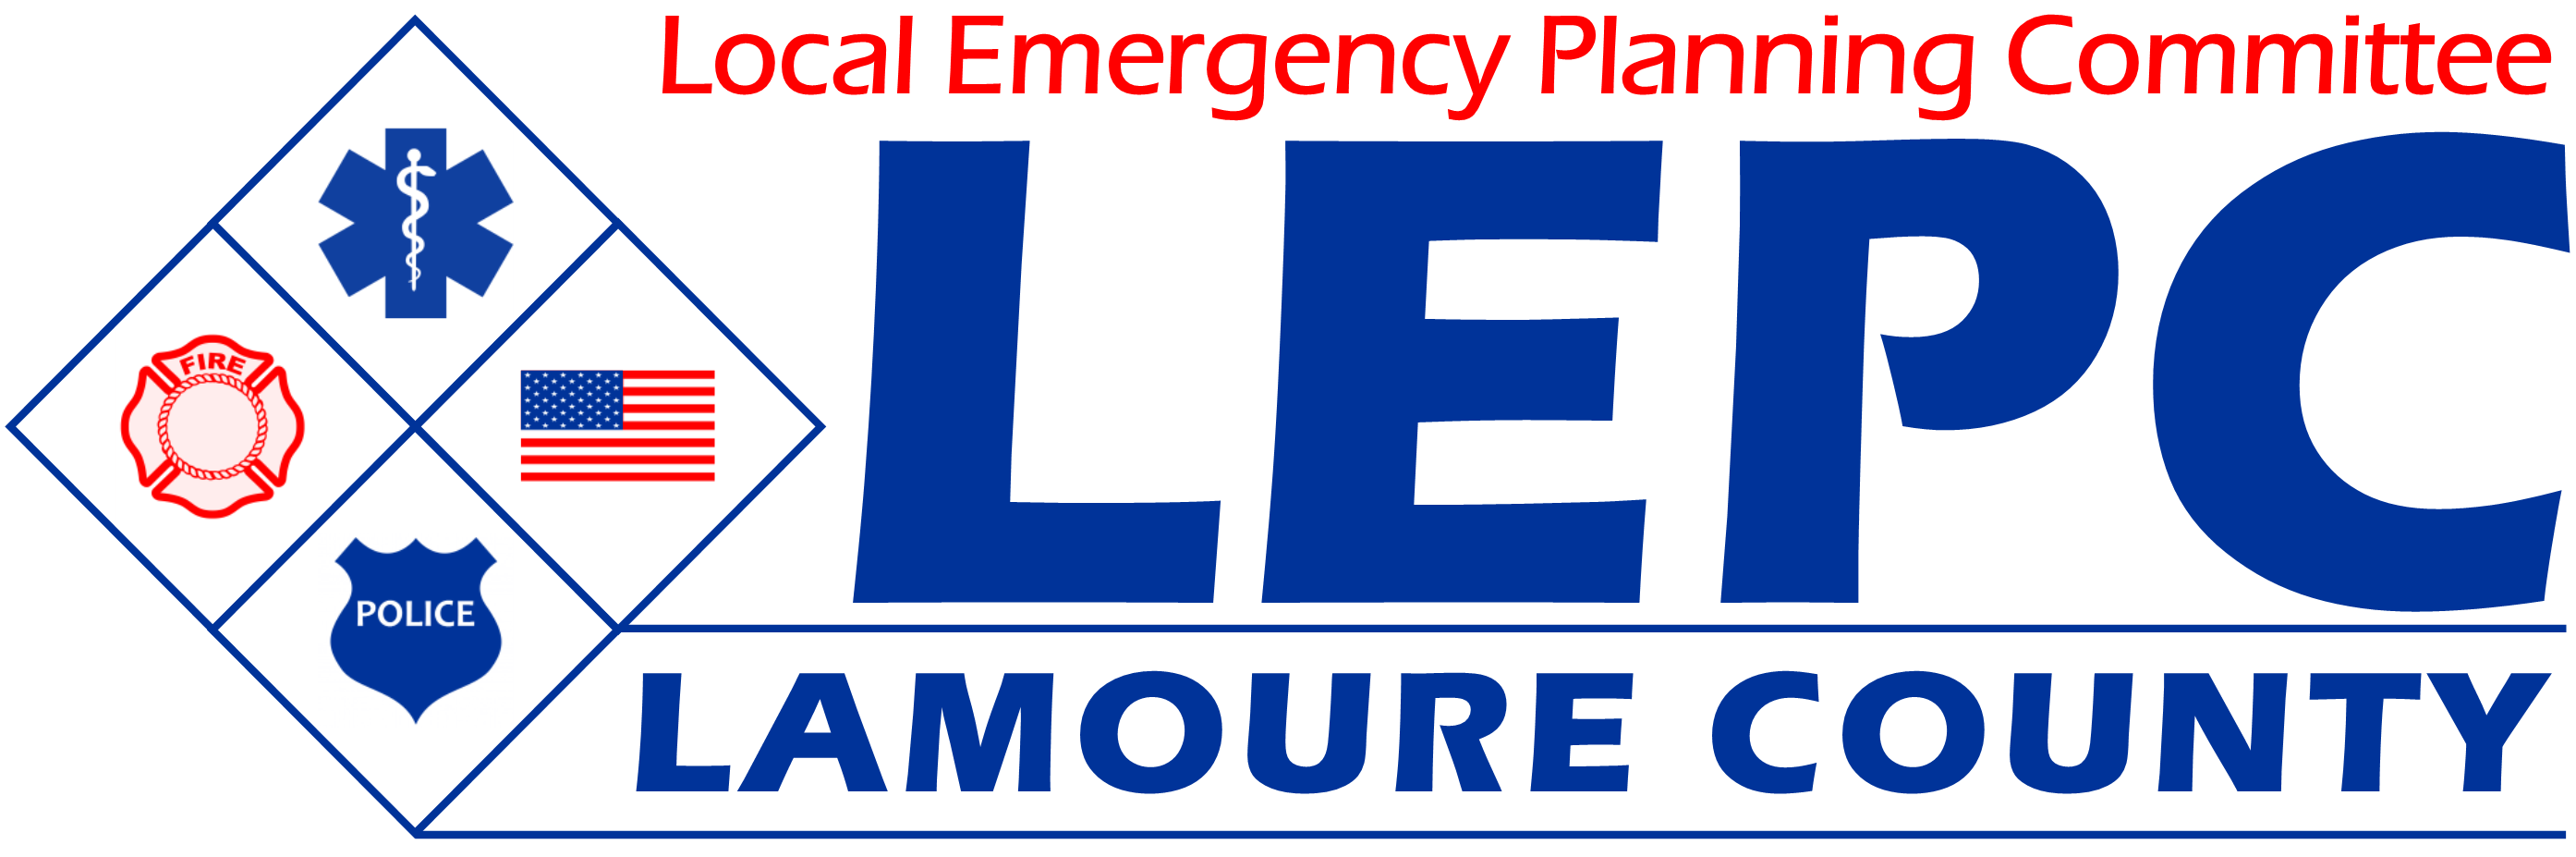 LaMoure County Emergency Planning Committee Logo